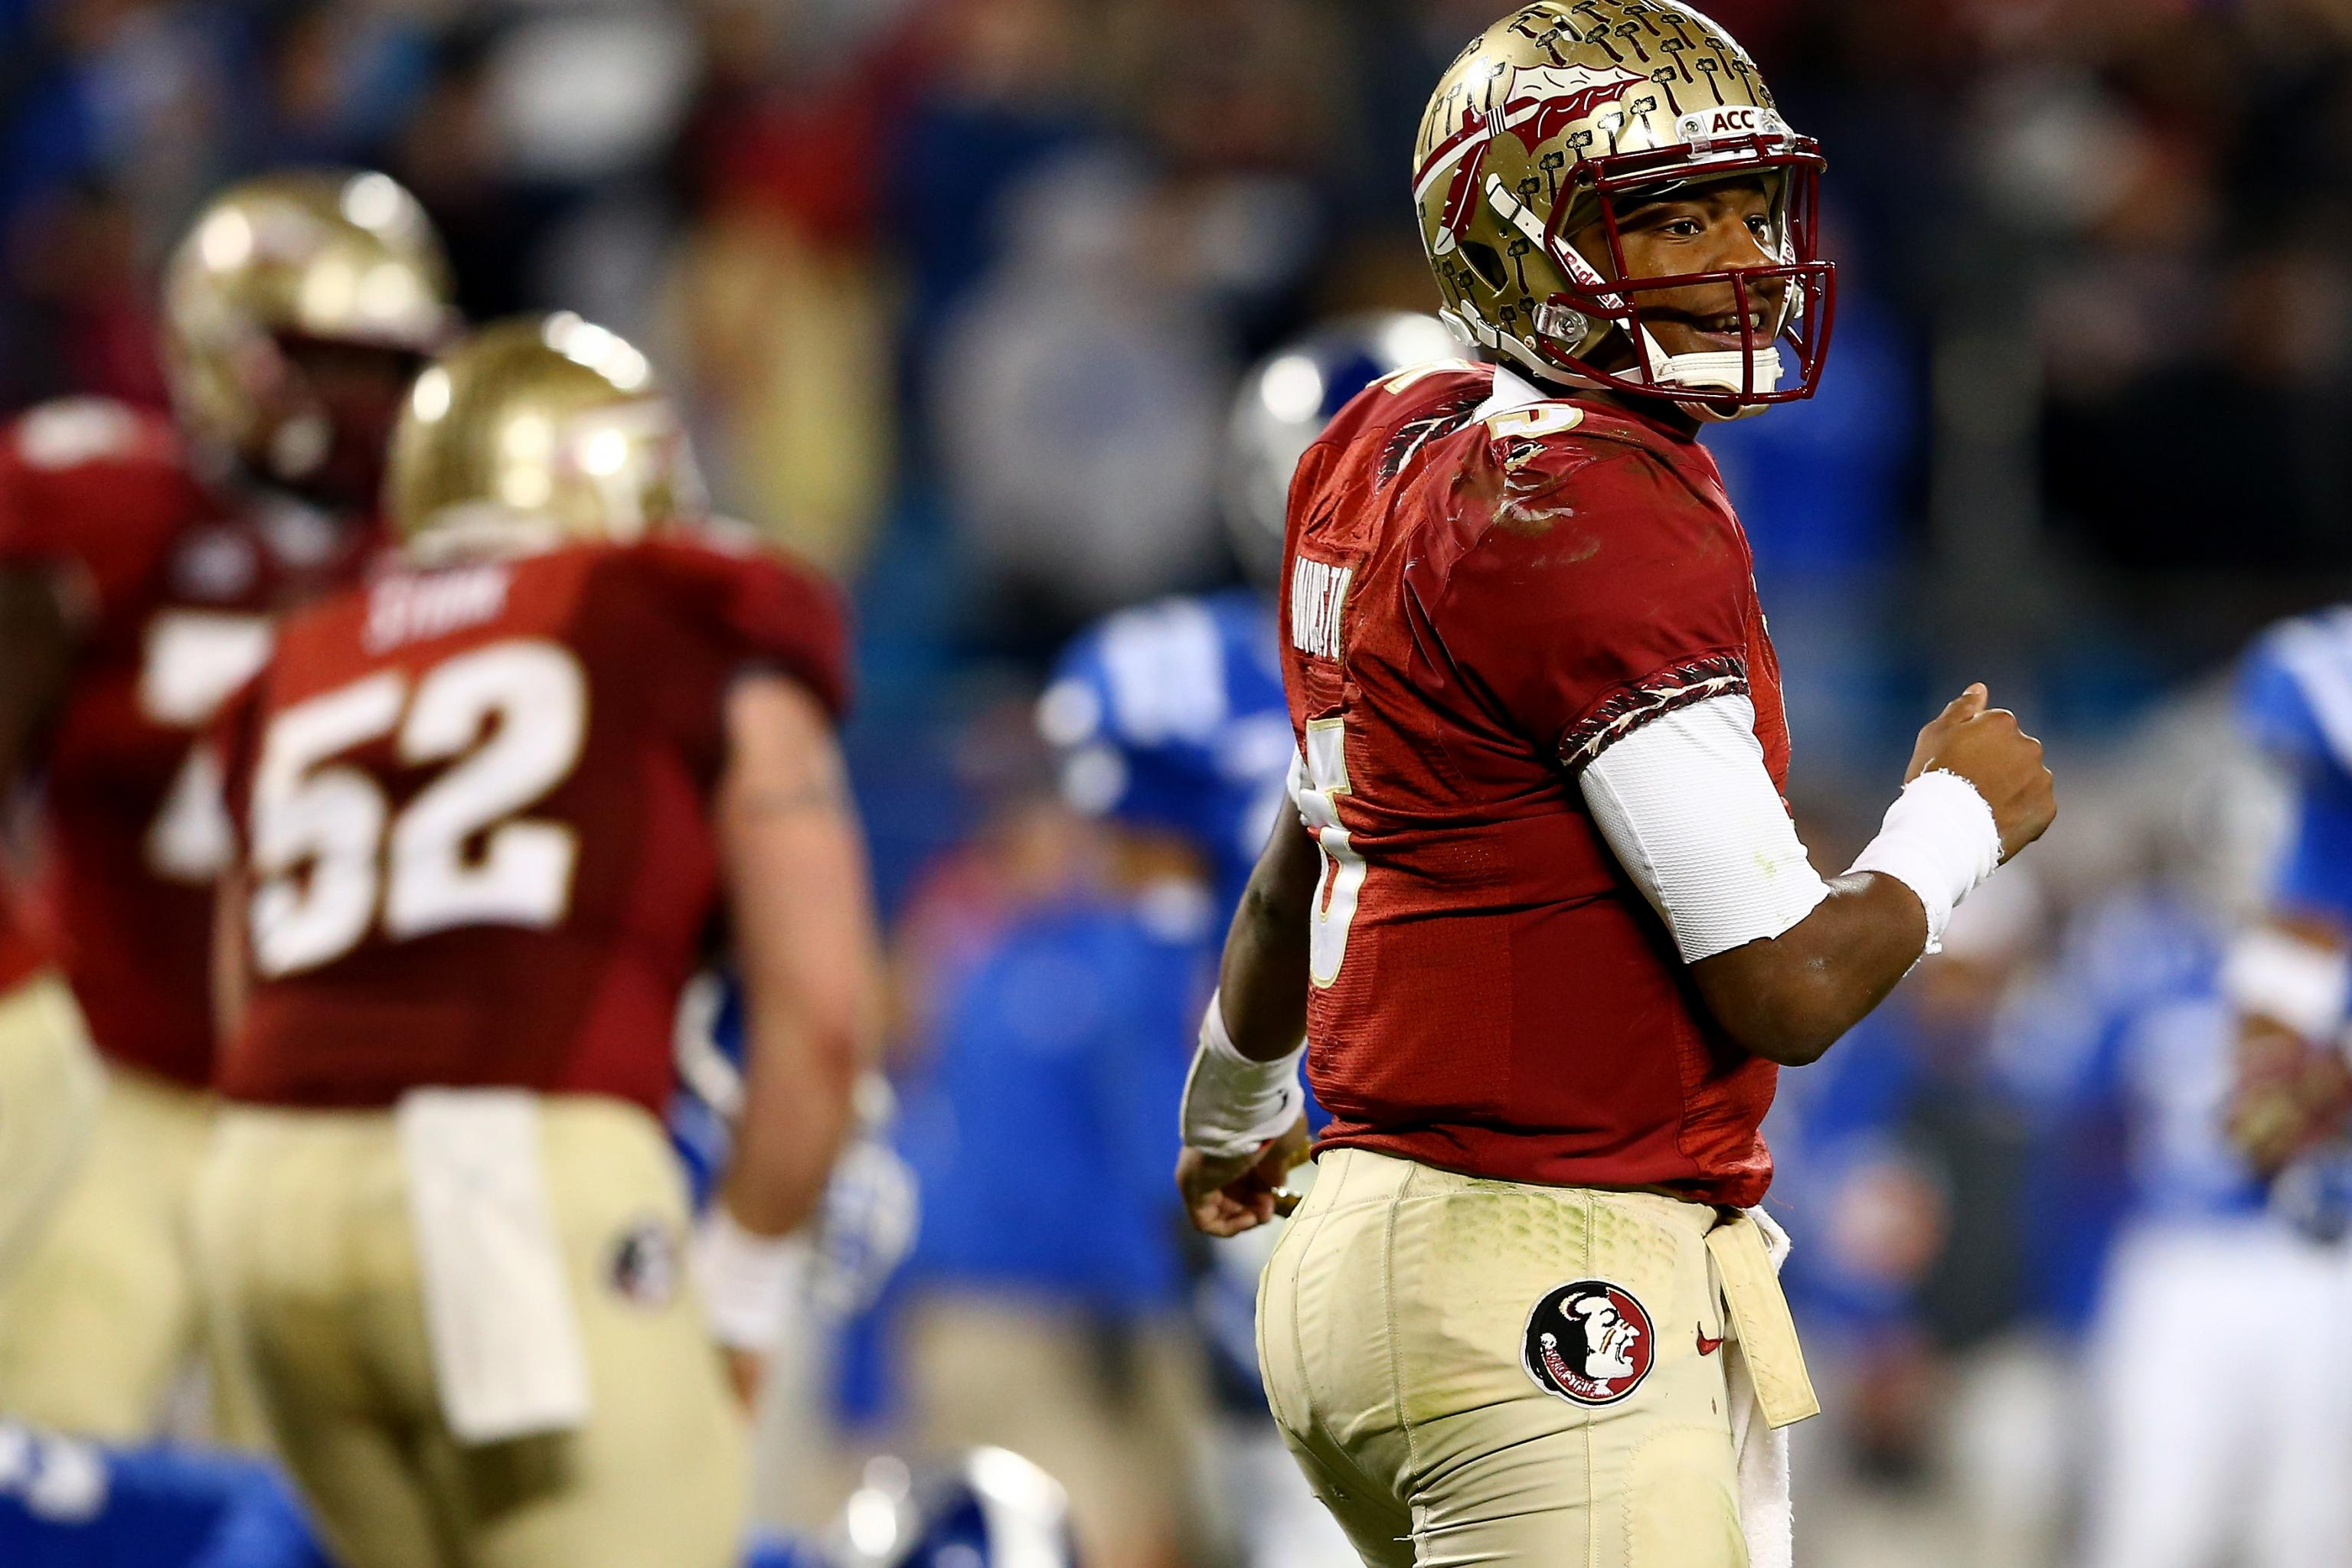 Auburn florida state betting predictions against the spread ipl betting predictions site